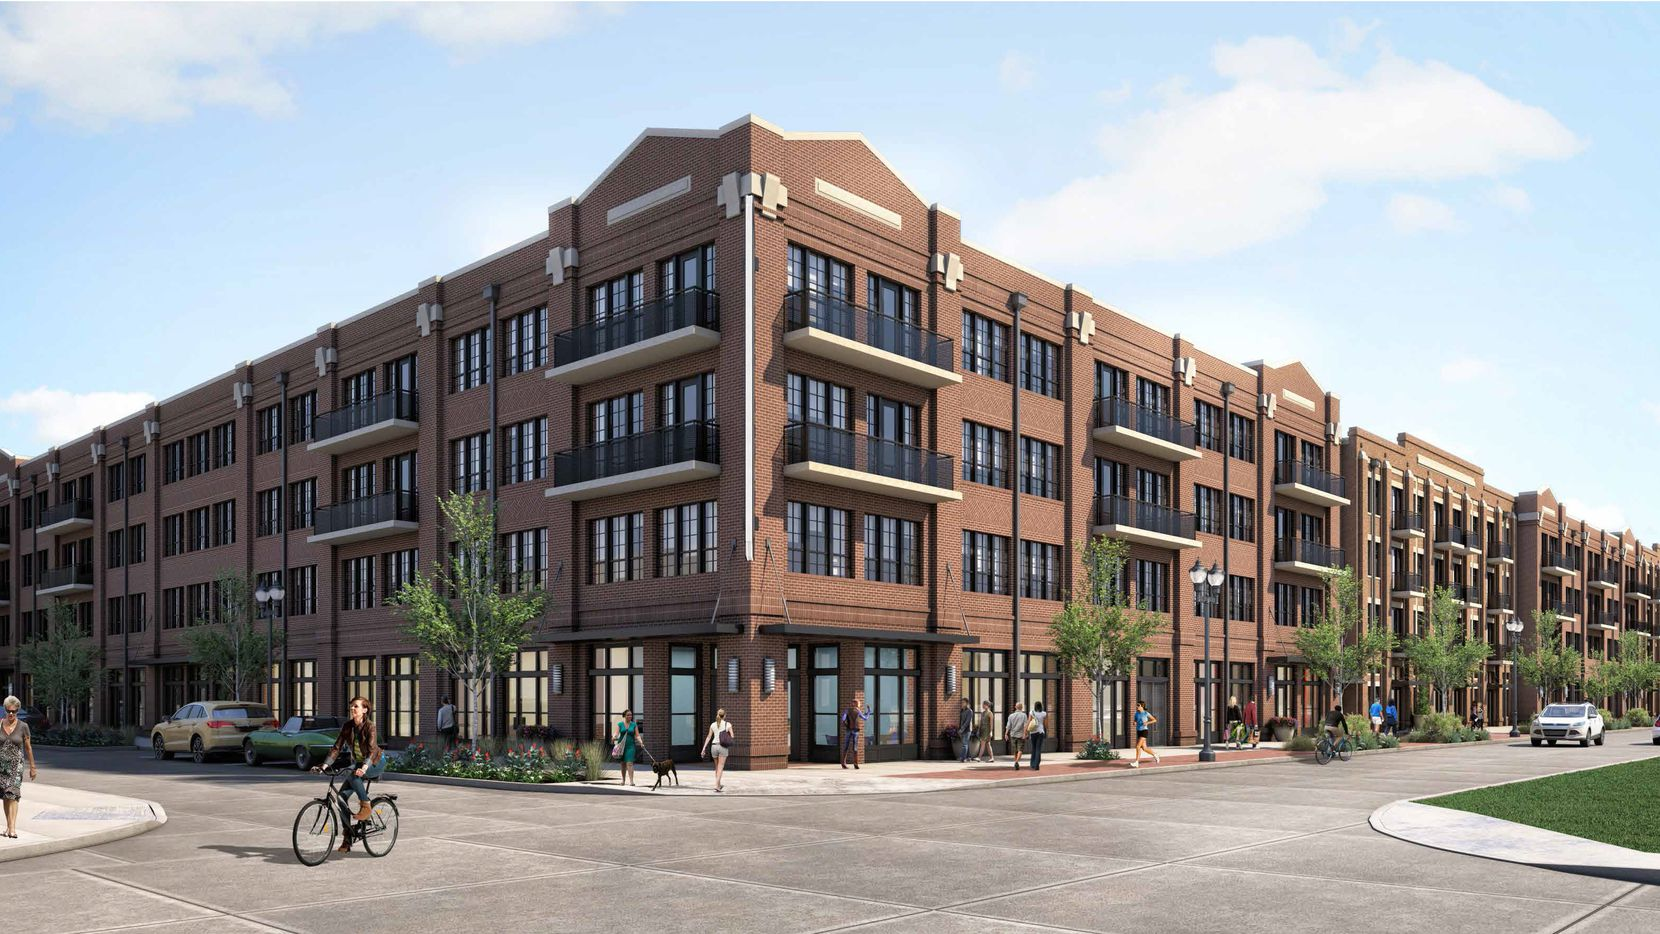 KWA Construction is building the Kilby apartments for Toll Brothers.